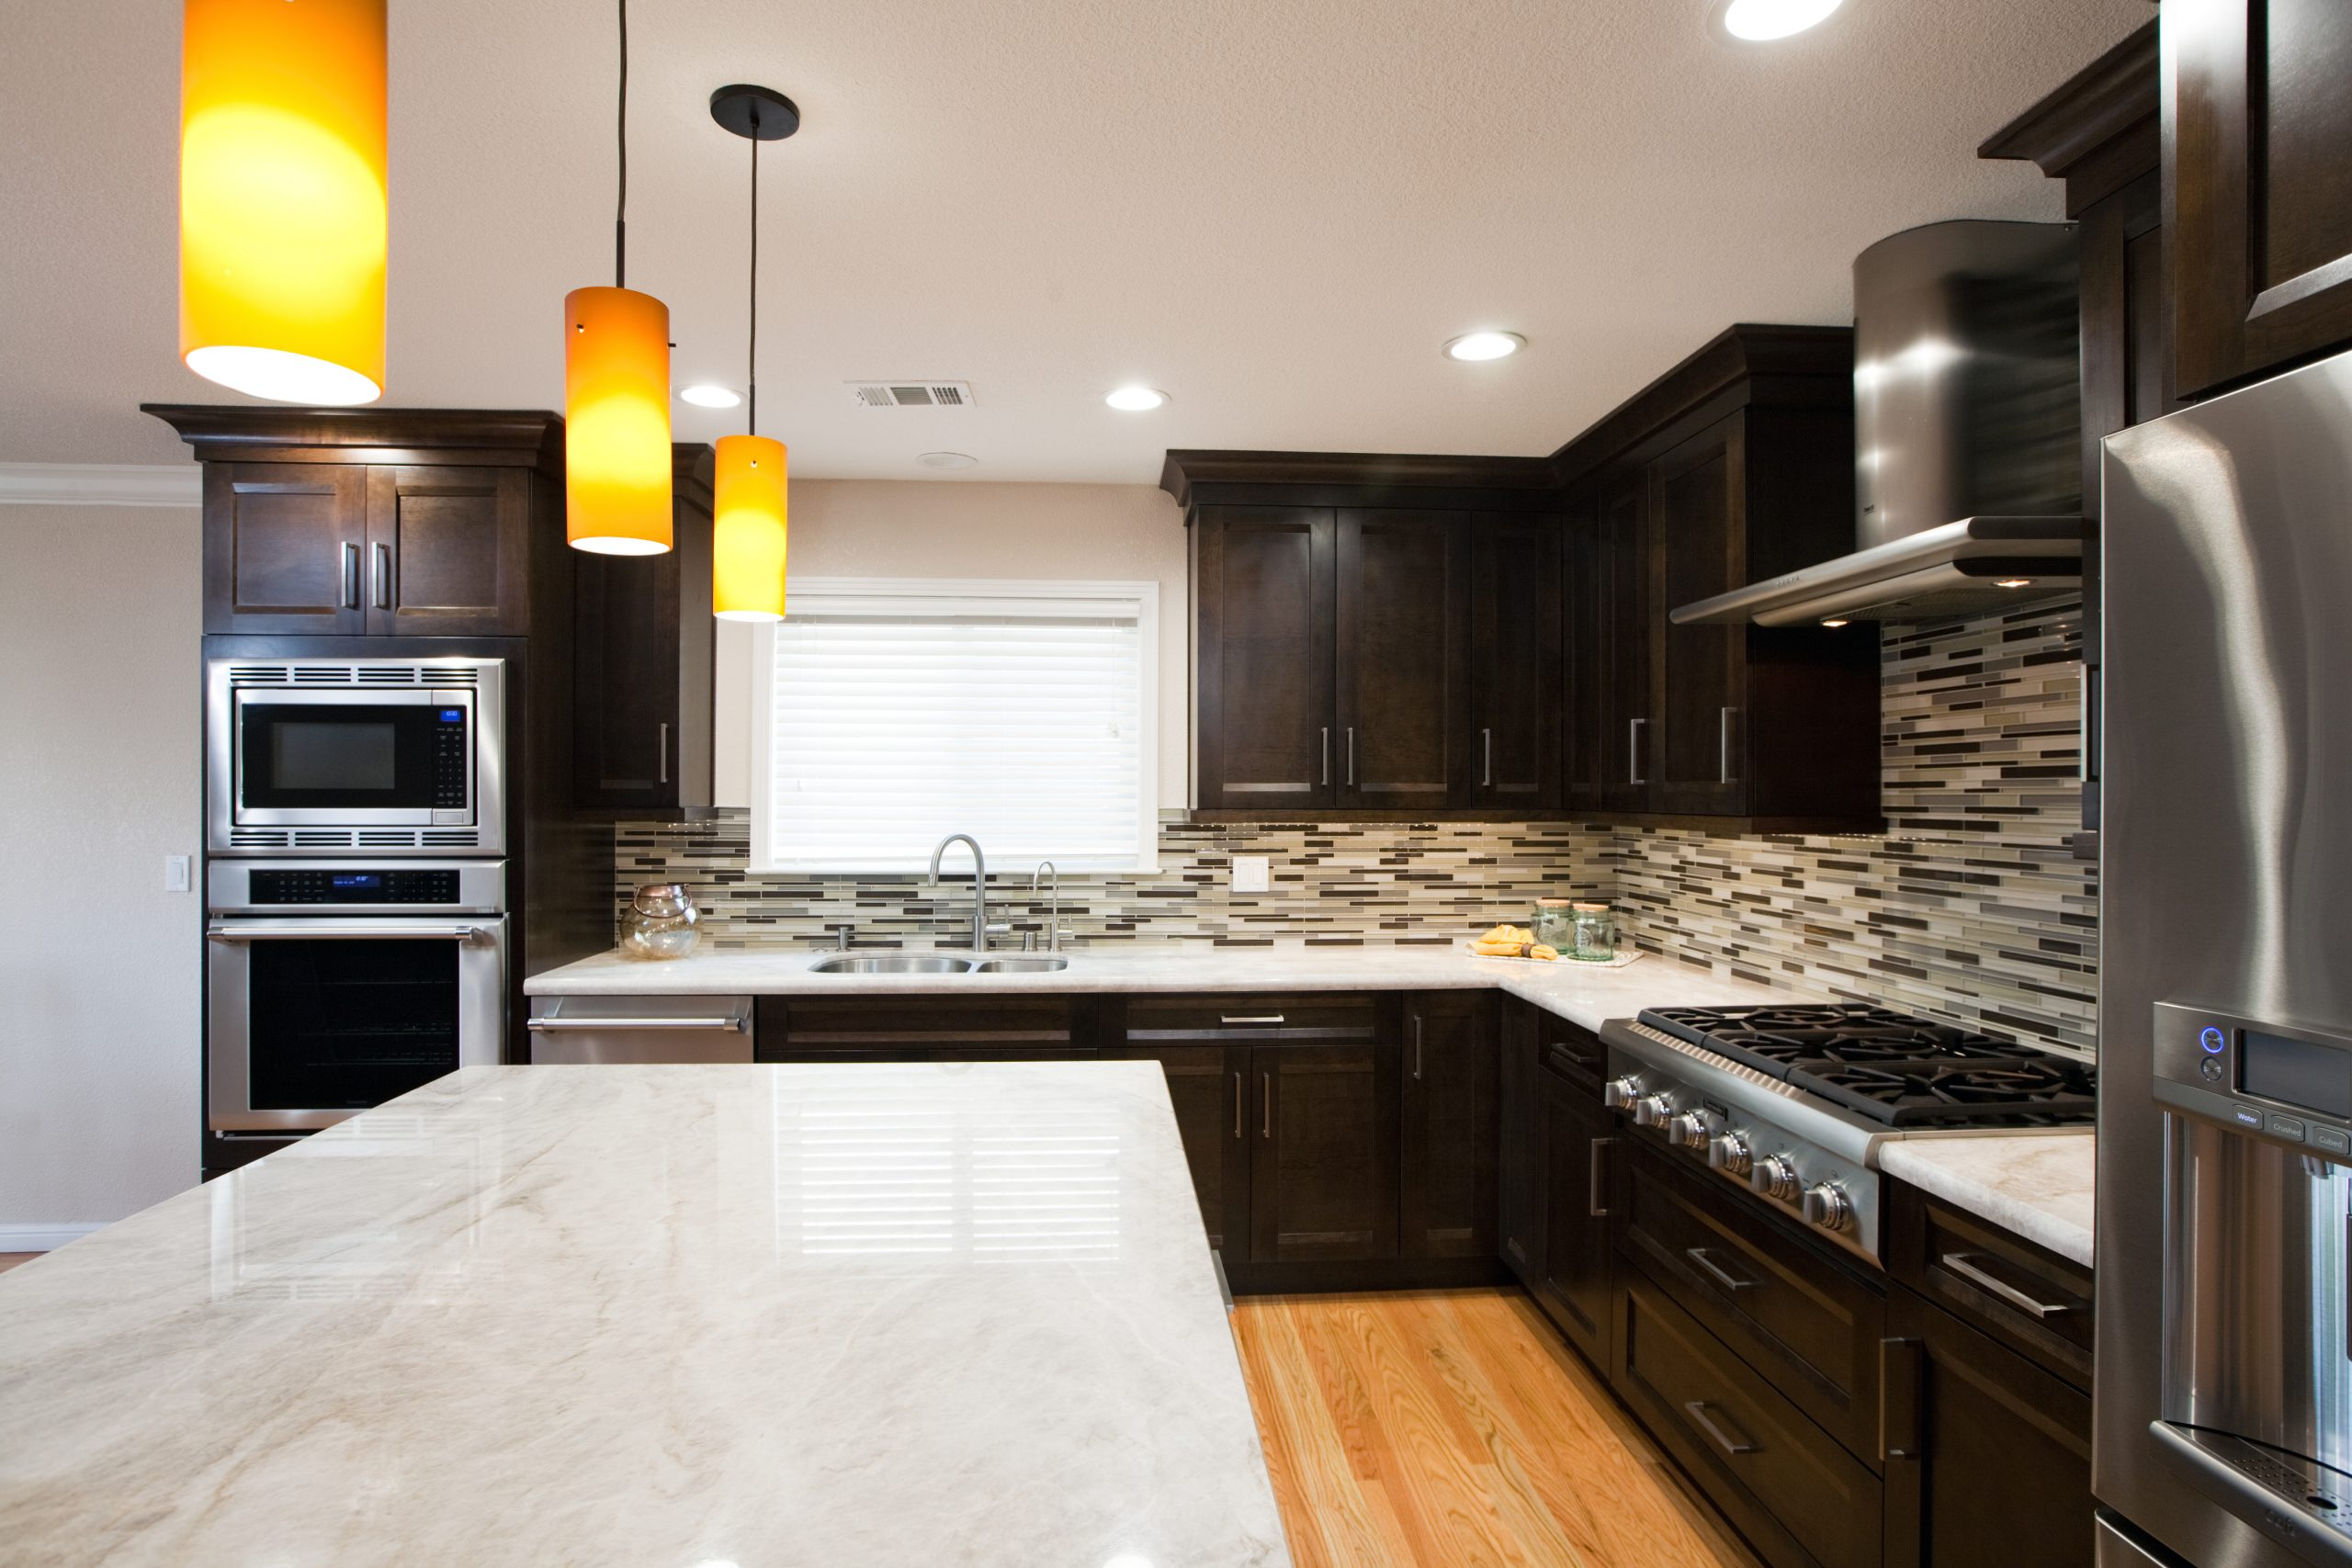 A modern kitchen with stainless steel appliances, tile back splash, and granite counter tops.